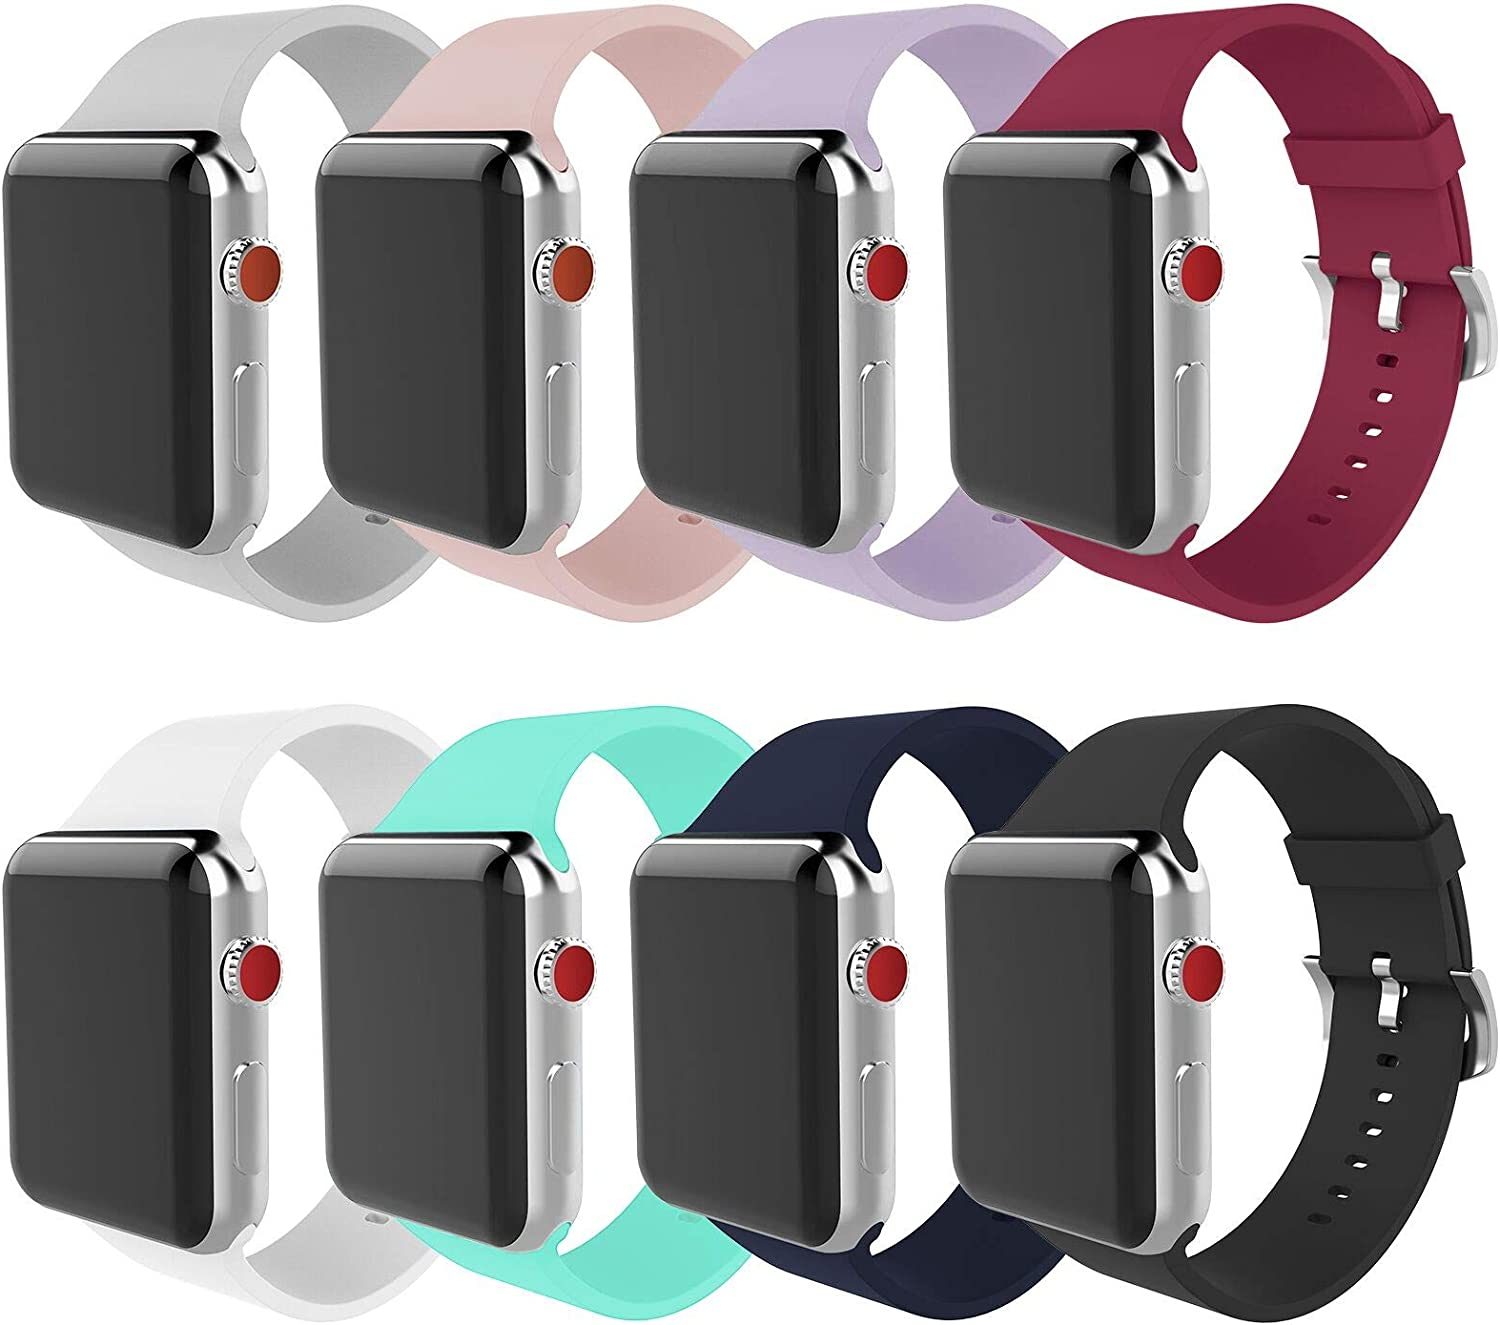 BMBEAR Compatible Apple Watch Band 42mm 44mm Soft Silicone Replacement iWatch Band for Apple Watch Series 6 Series 5 Series 4 Series 3 Series 2 Series 1